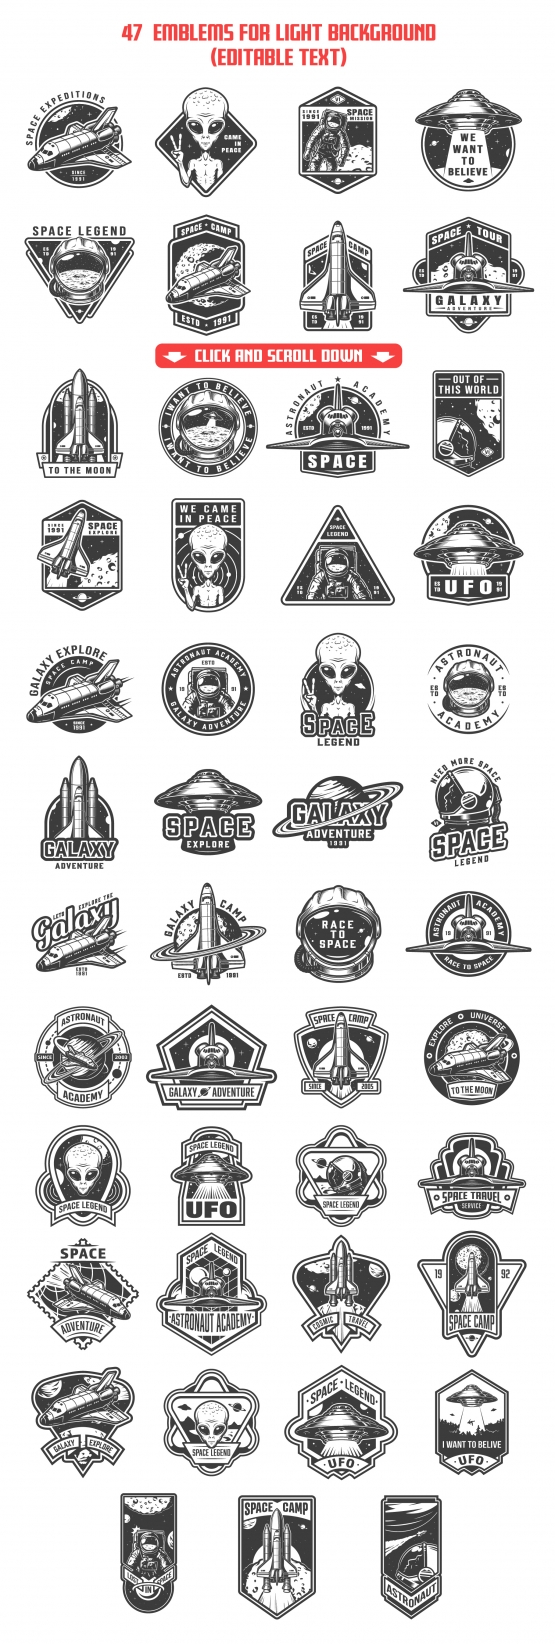 47 black space emblems, designs, and badges on white background. Collection of vector art with astronaut, shuttle and alien. Editable text, EPS, JPG, PDF, PSD, AI, PNG files.